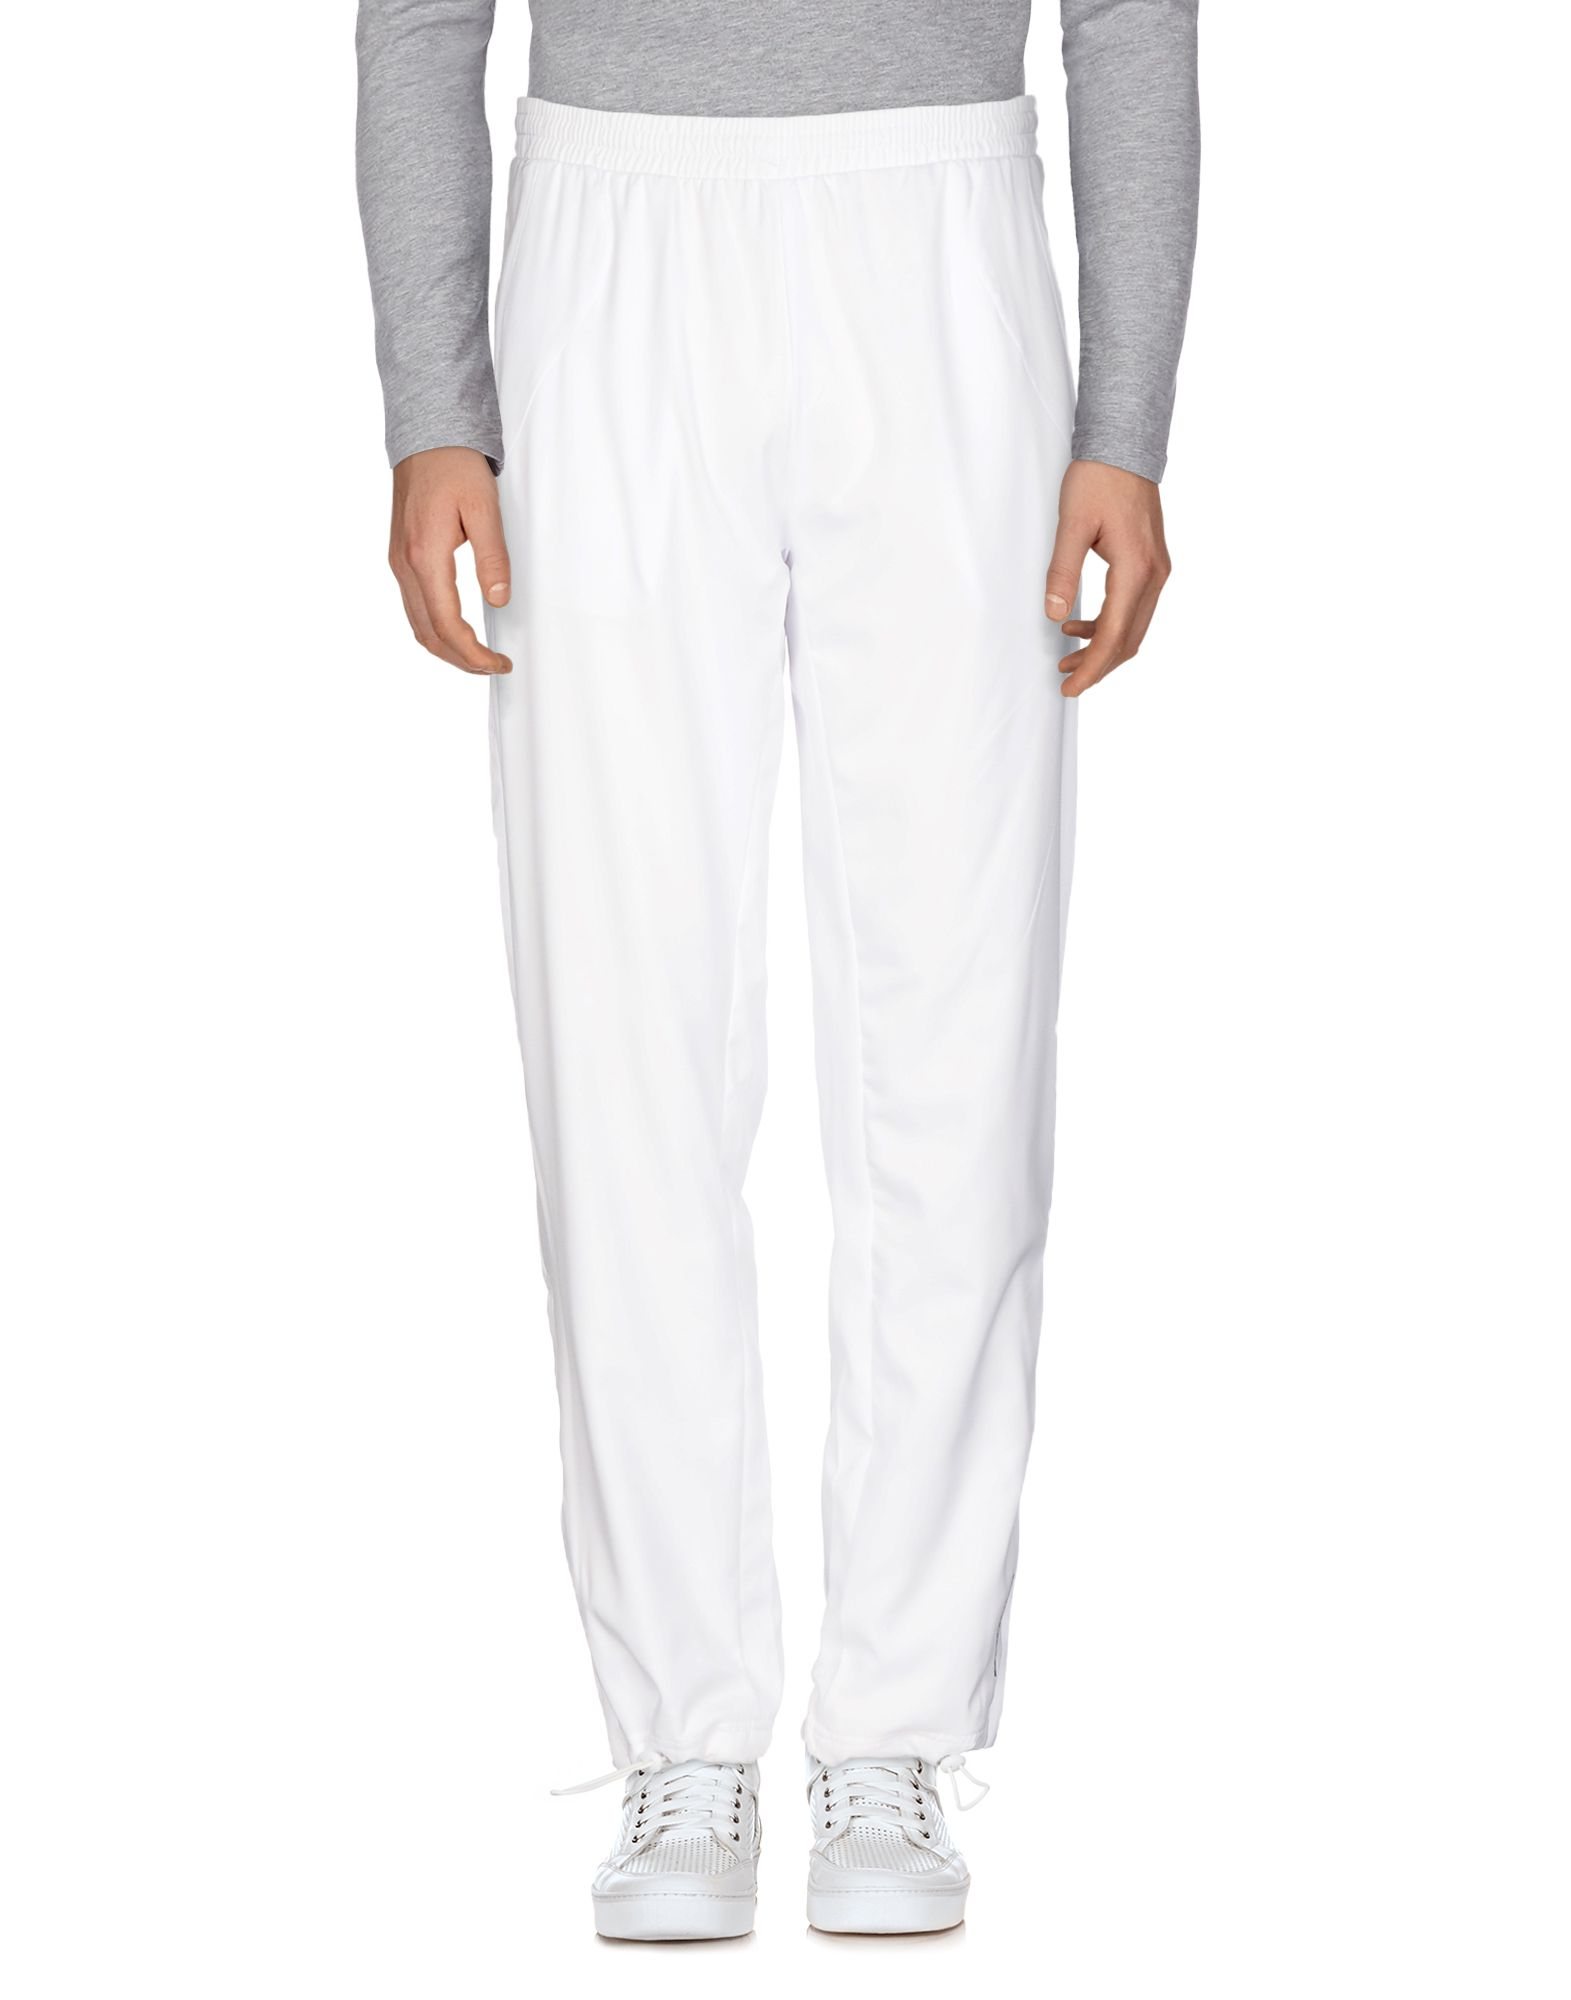 BABOLAT Casual Pants in White